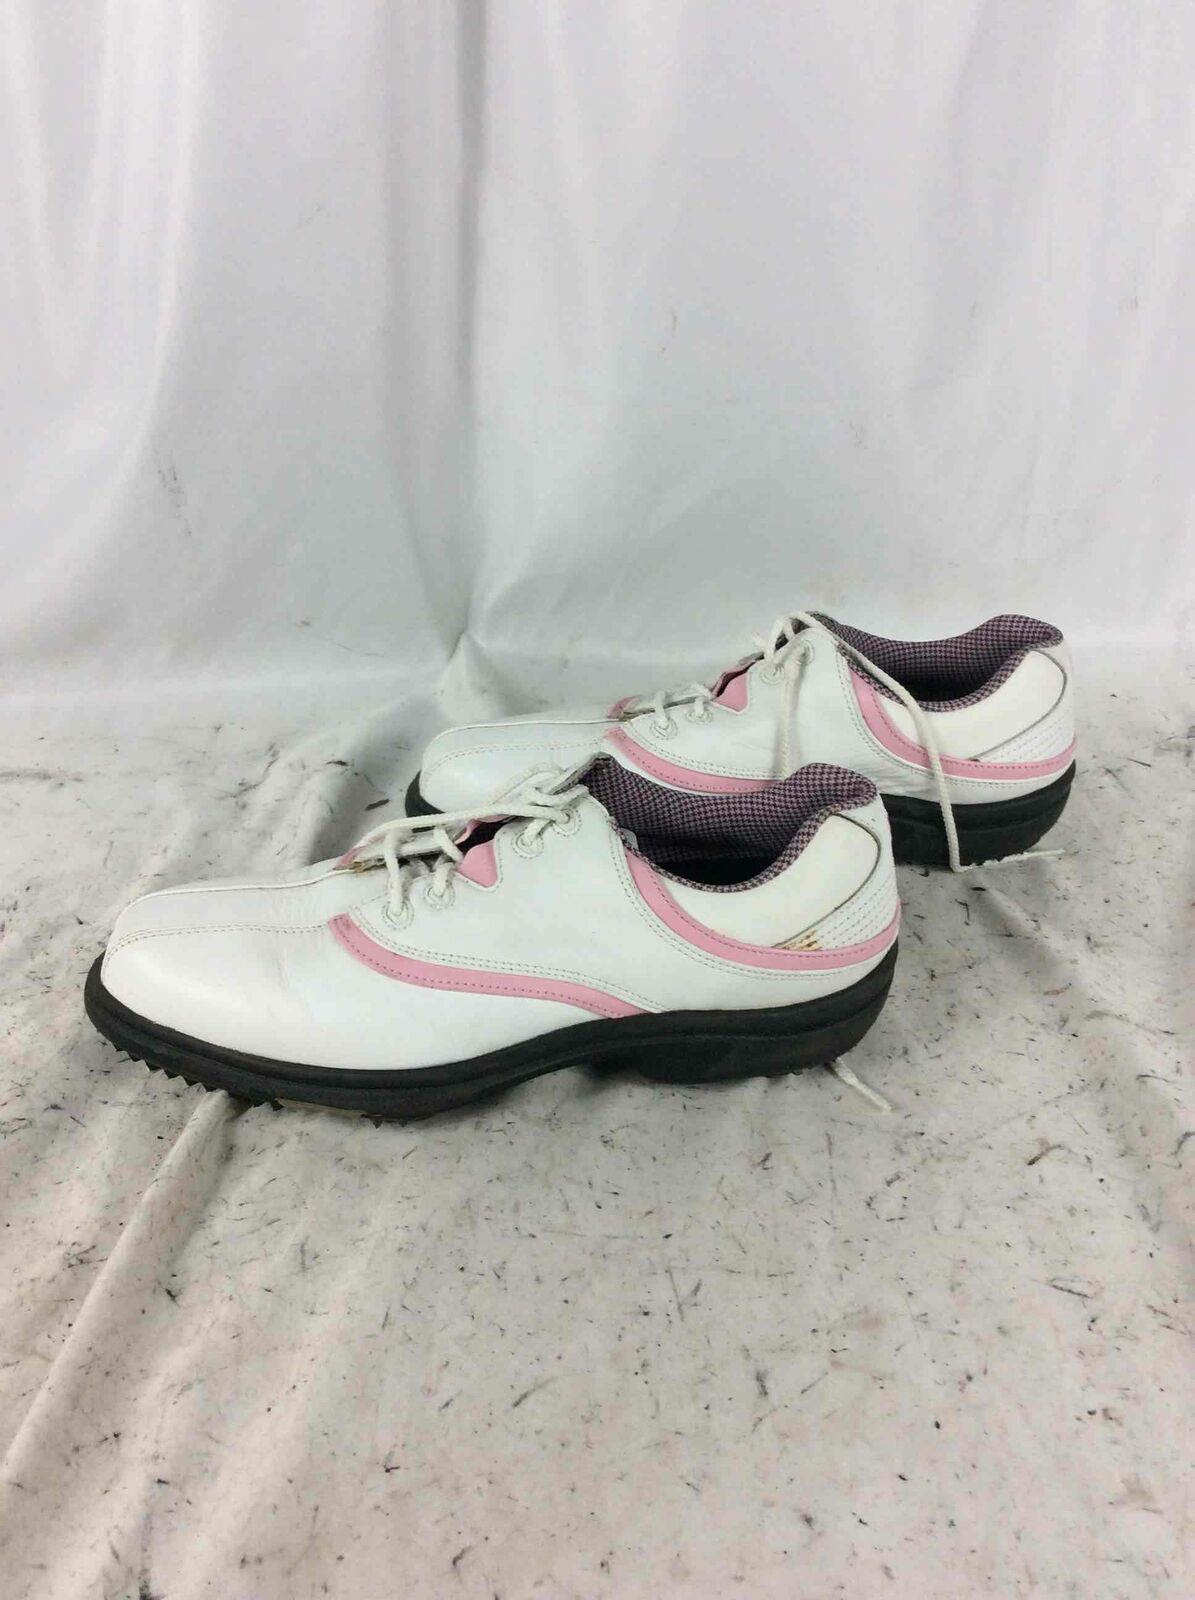 Primary image for Footjoy 8.5 Size Golf Shoes